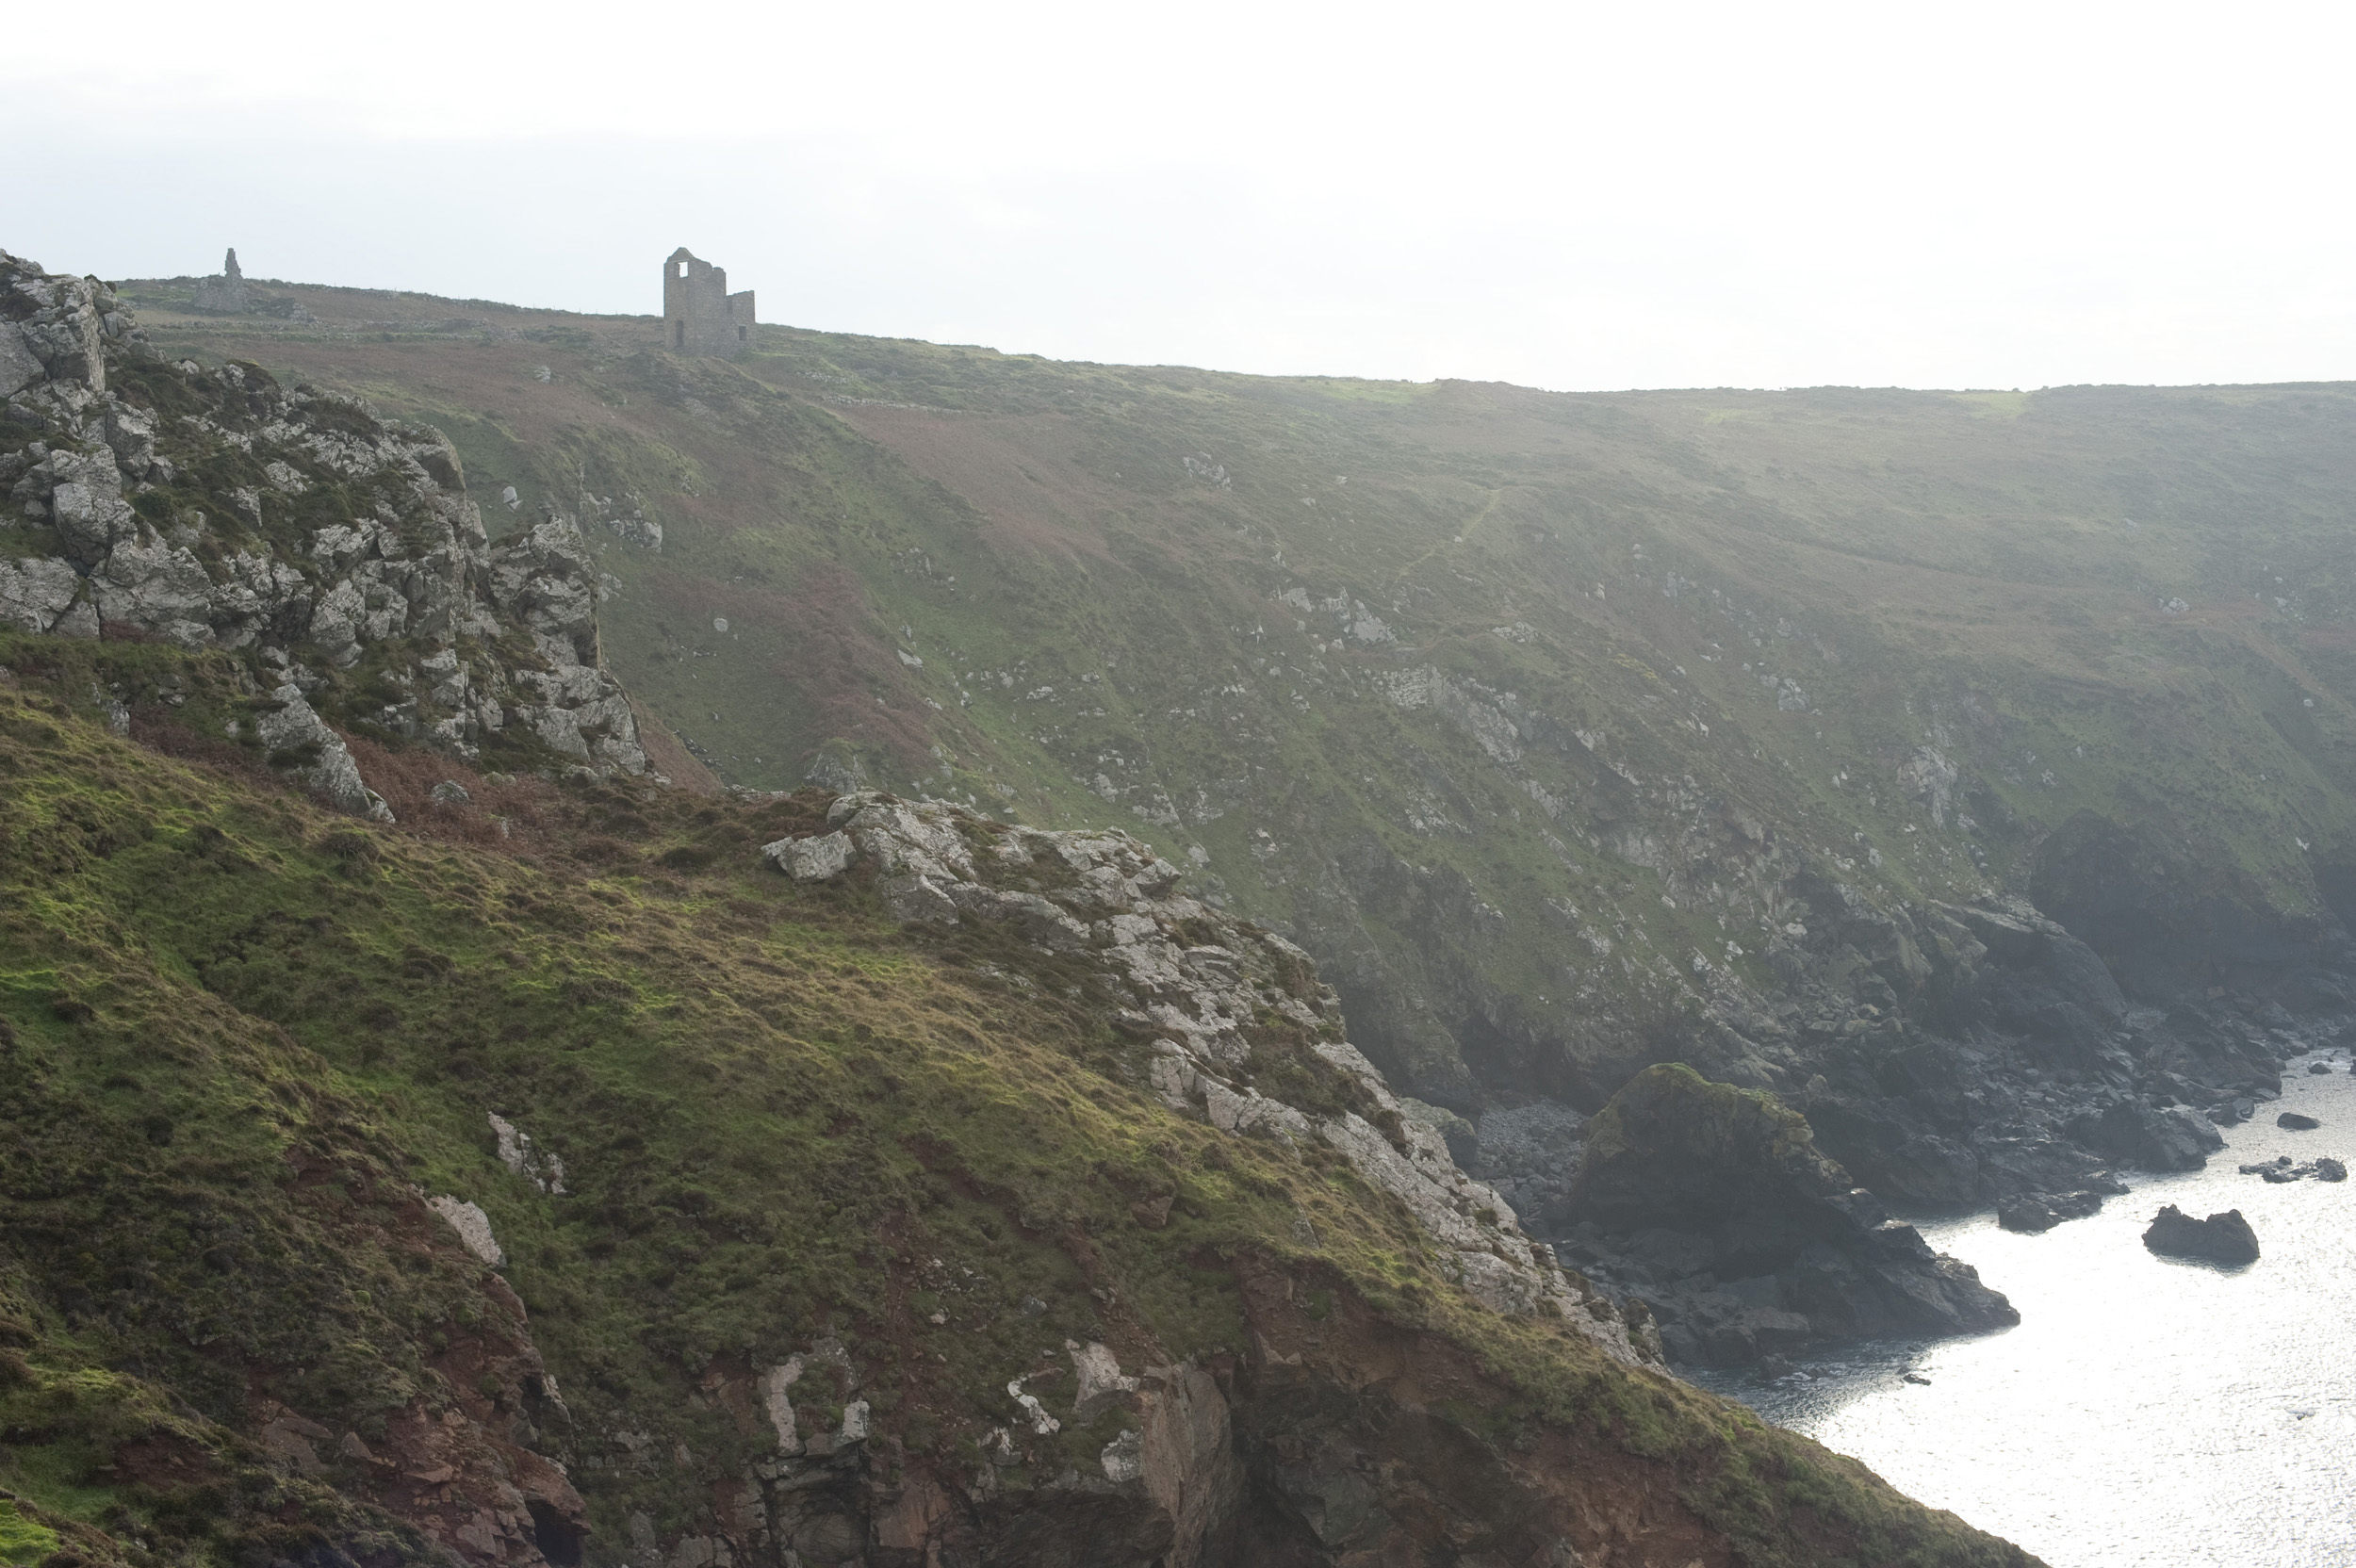 mine ruins perched high on cliffs over the atlantic, Part of the Cornwall Mining Landscape World Heritage Area